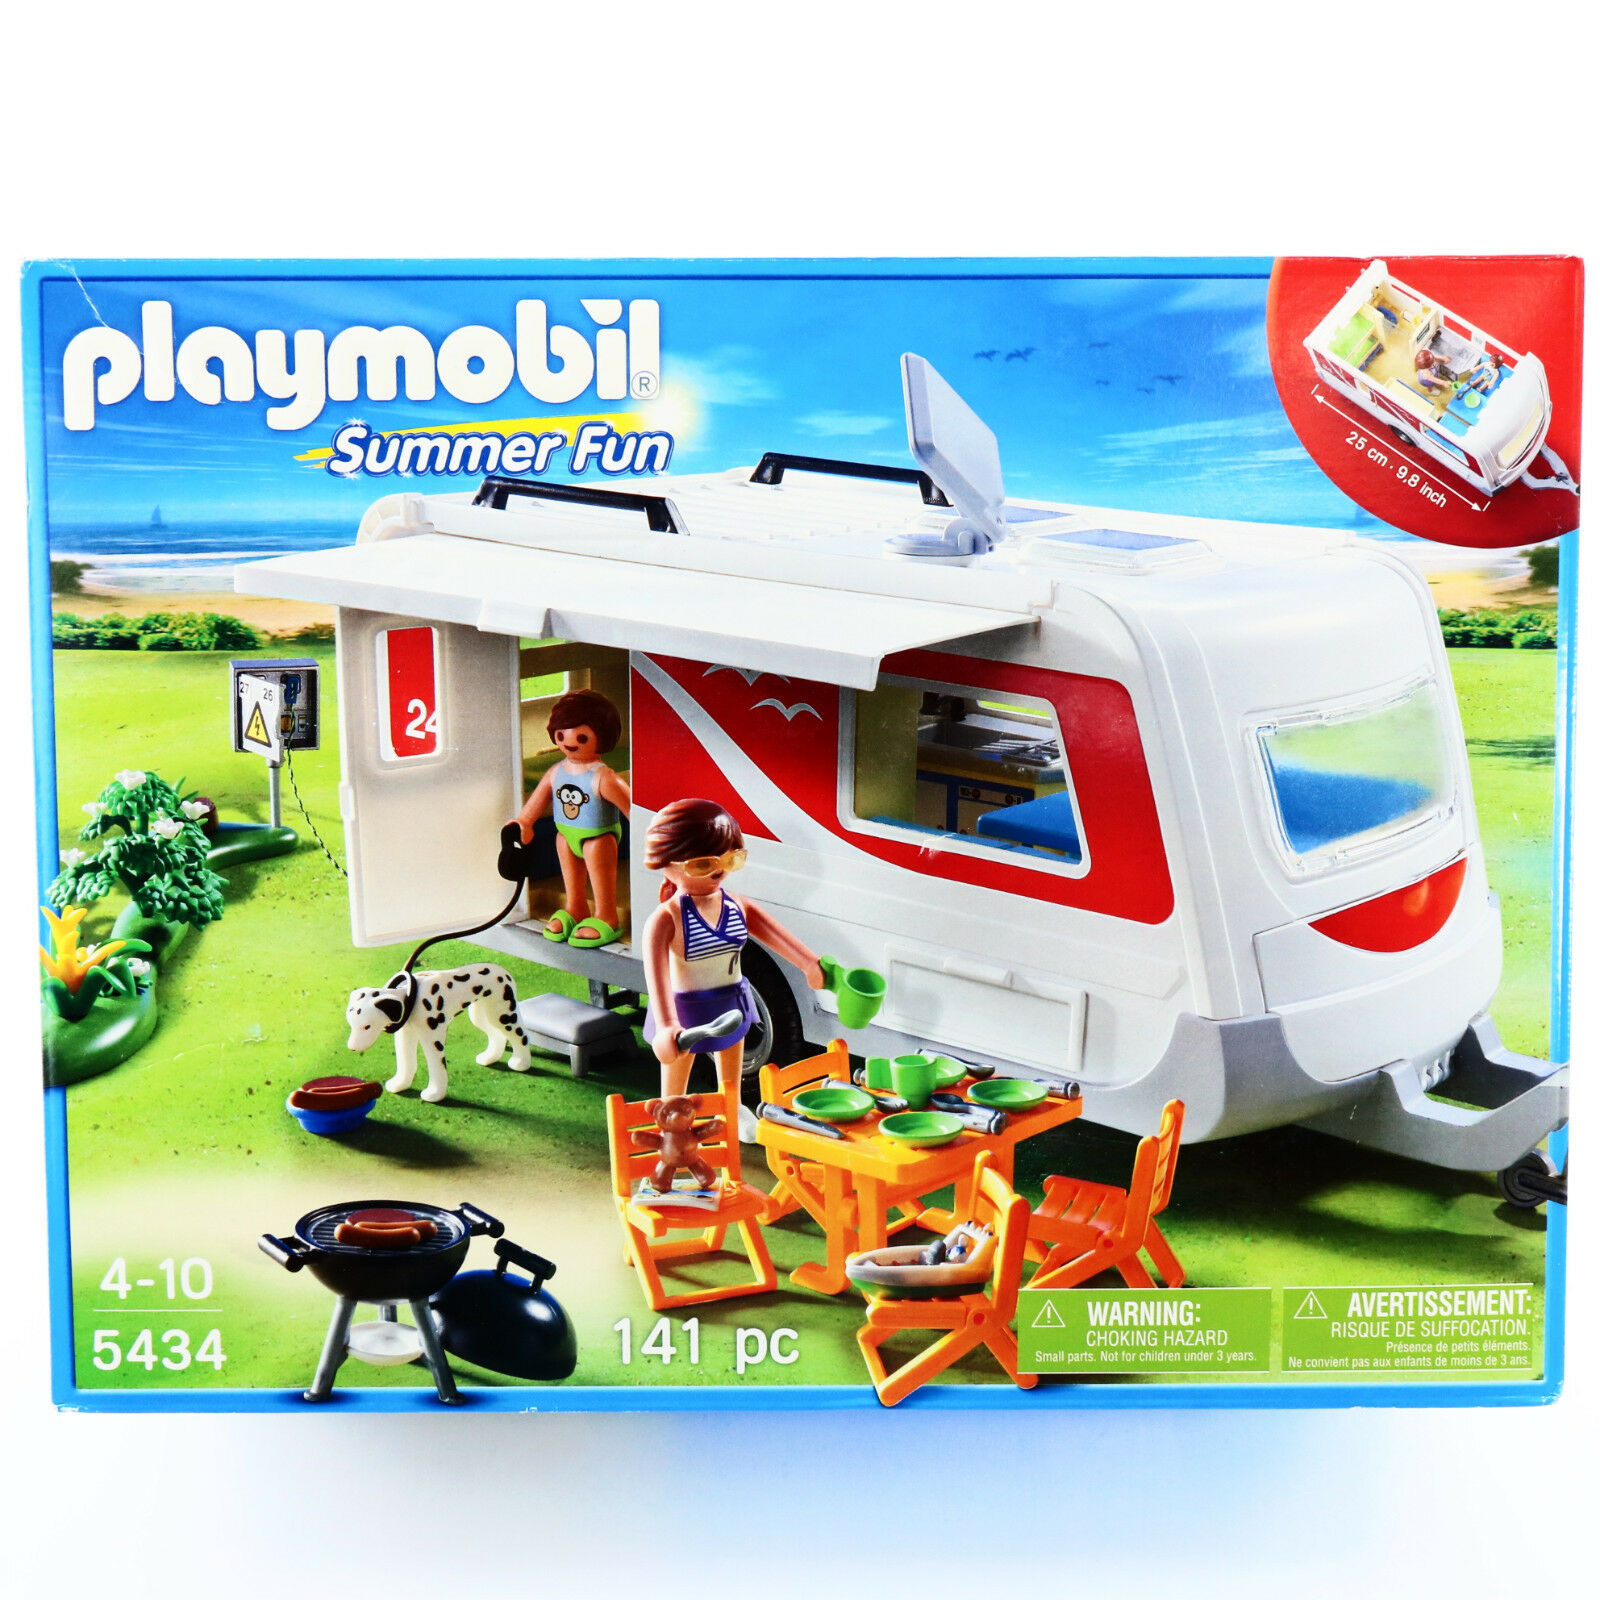 Playmobil 5434 Caravan Camper RV Family Camping Playset Toys For Boys Age 4 5 6